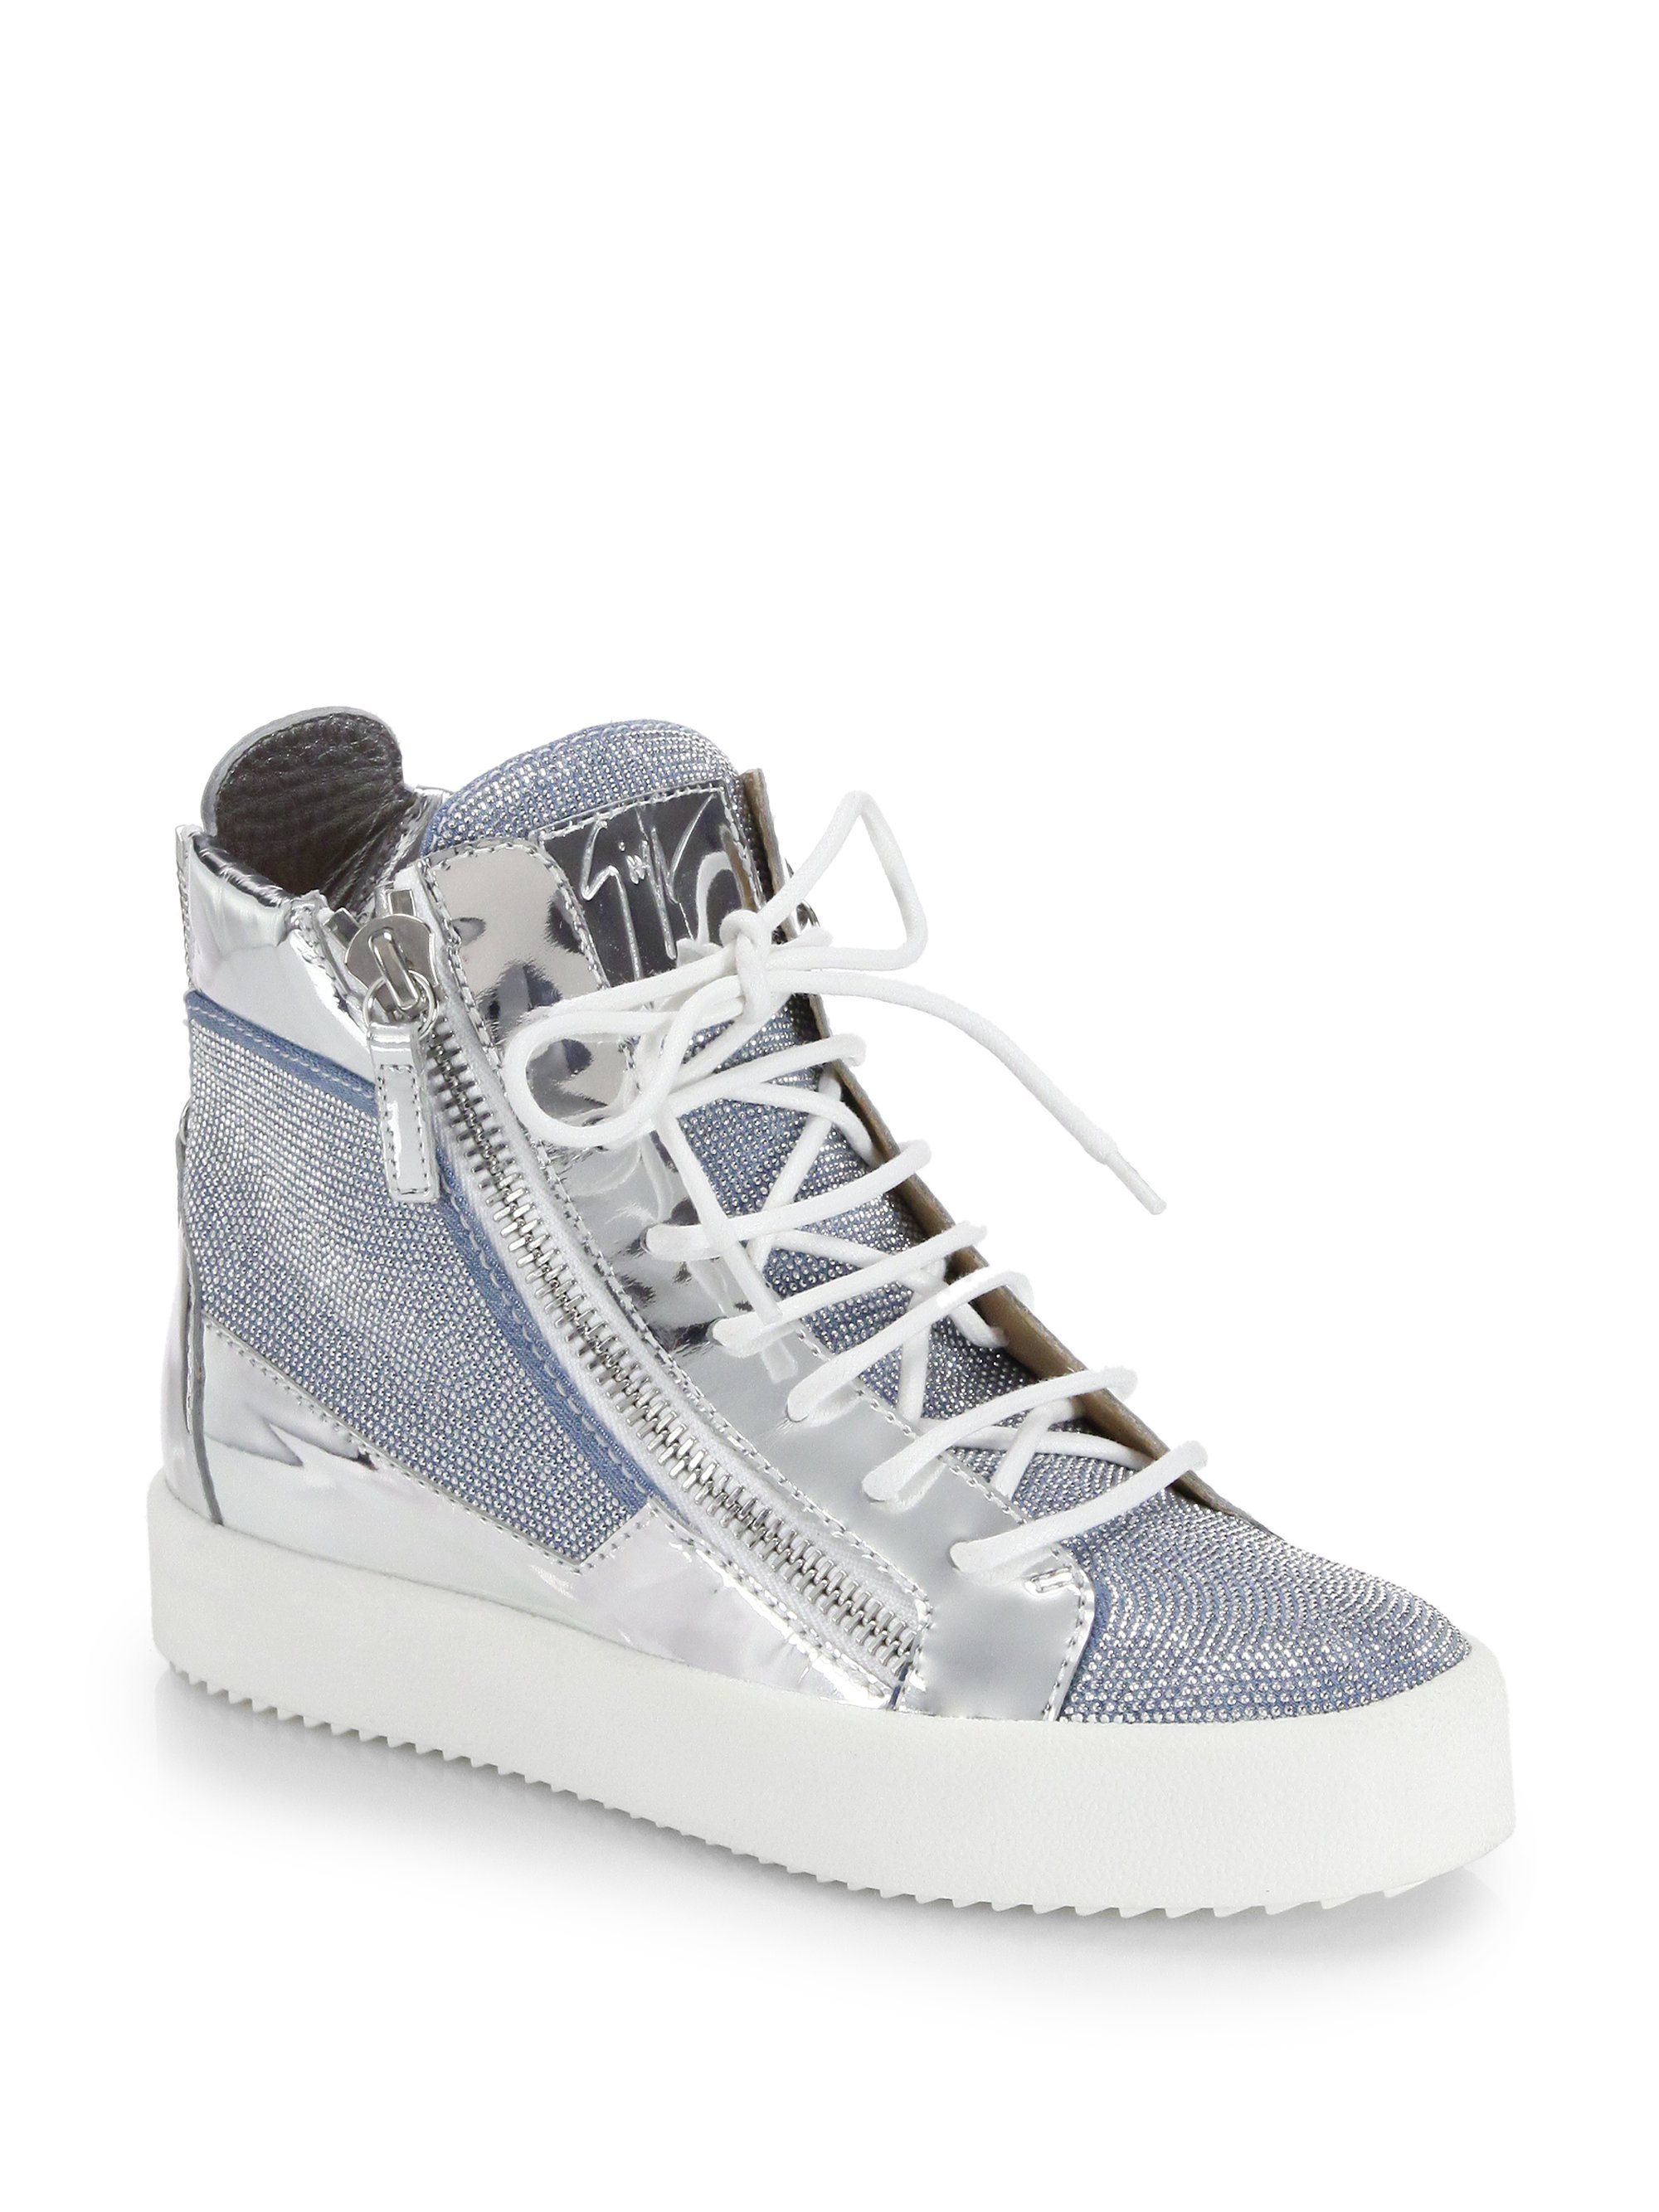 giuseppe zanotti metallic sneakers for women